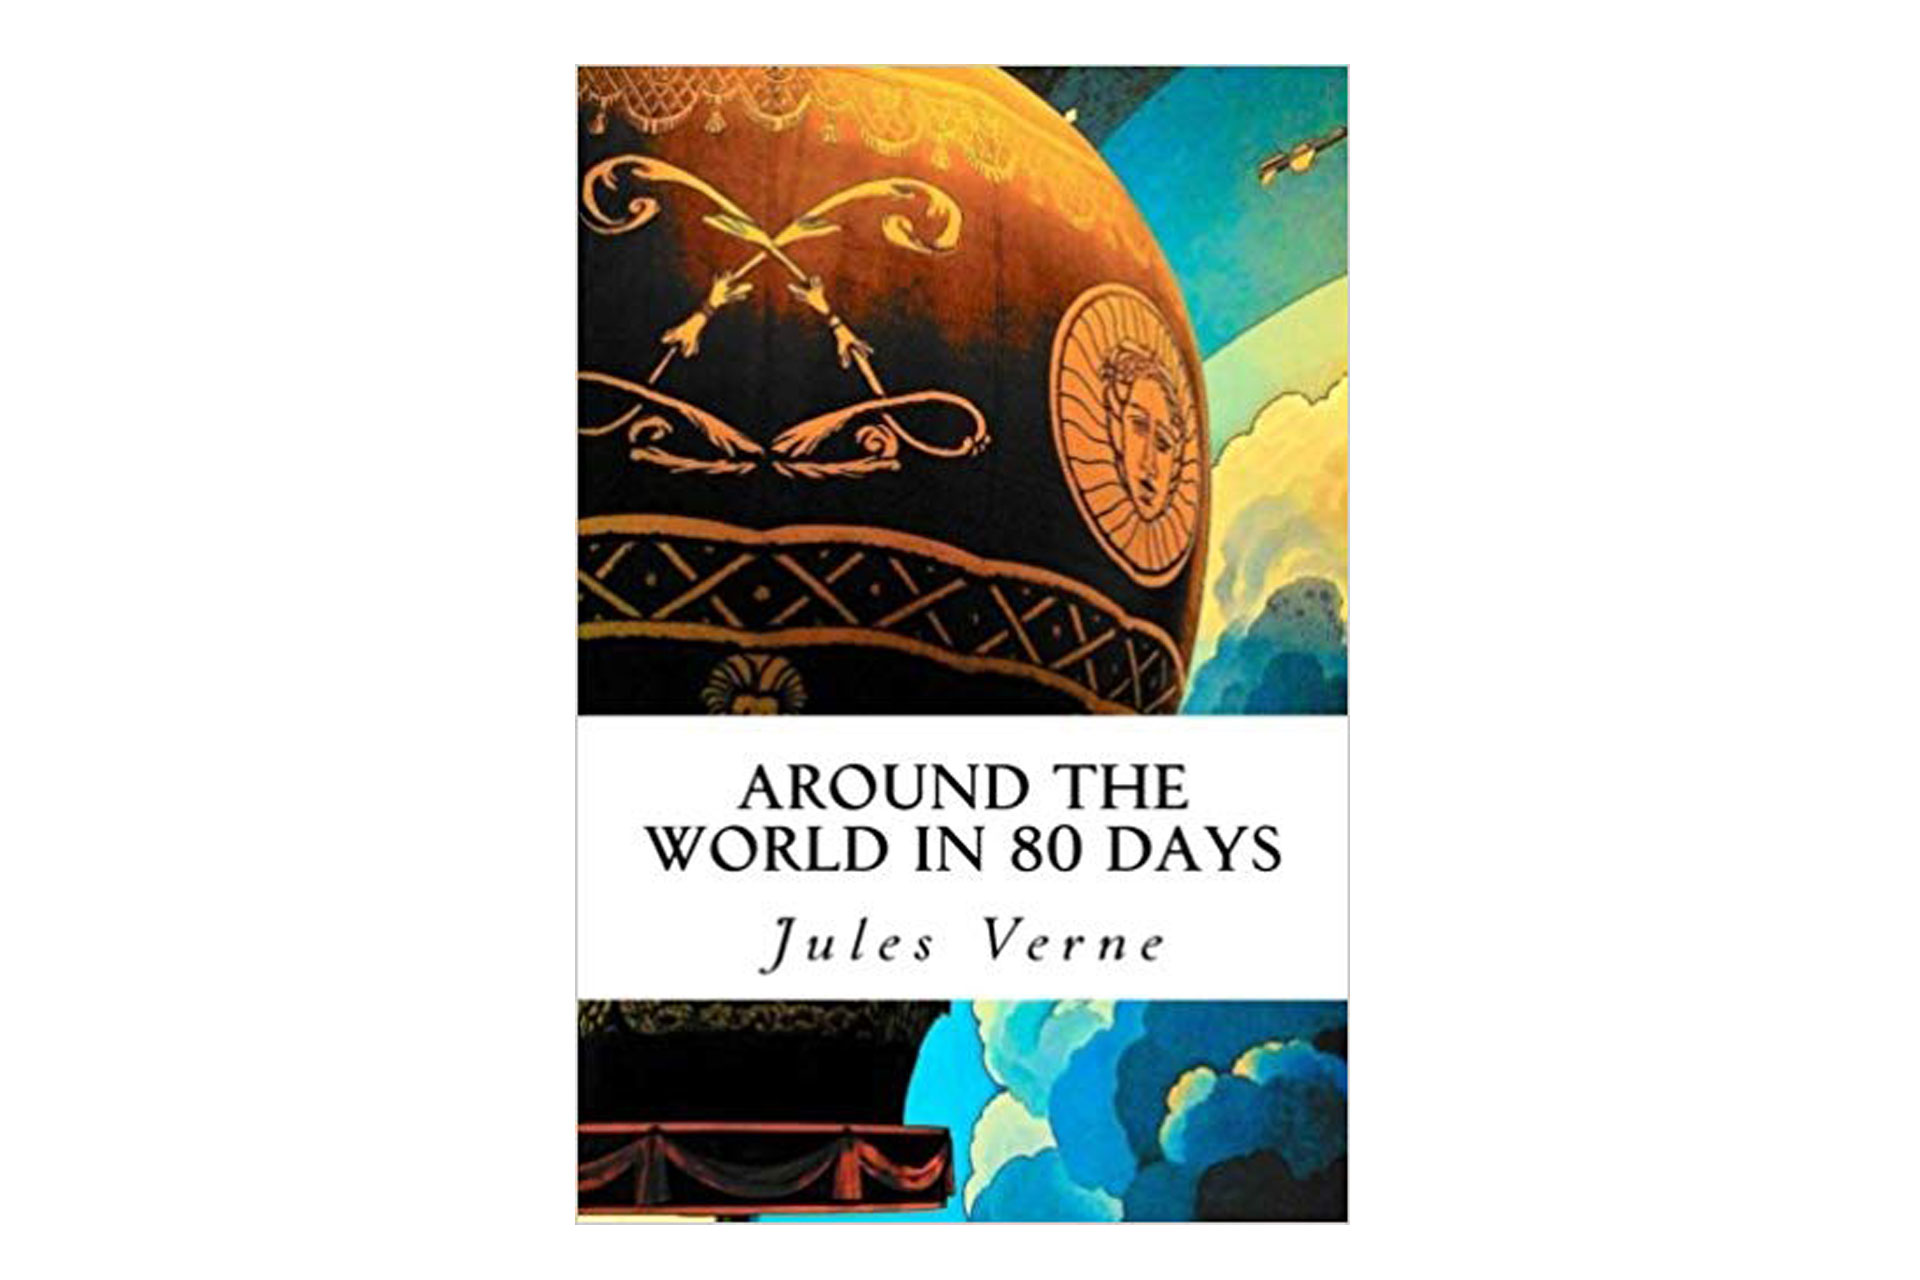 Around The World in 80 Days Book; Courtesy of Amazon